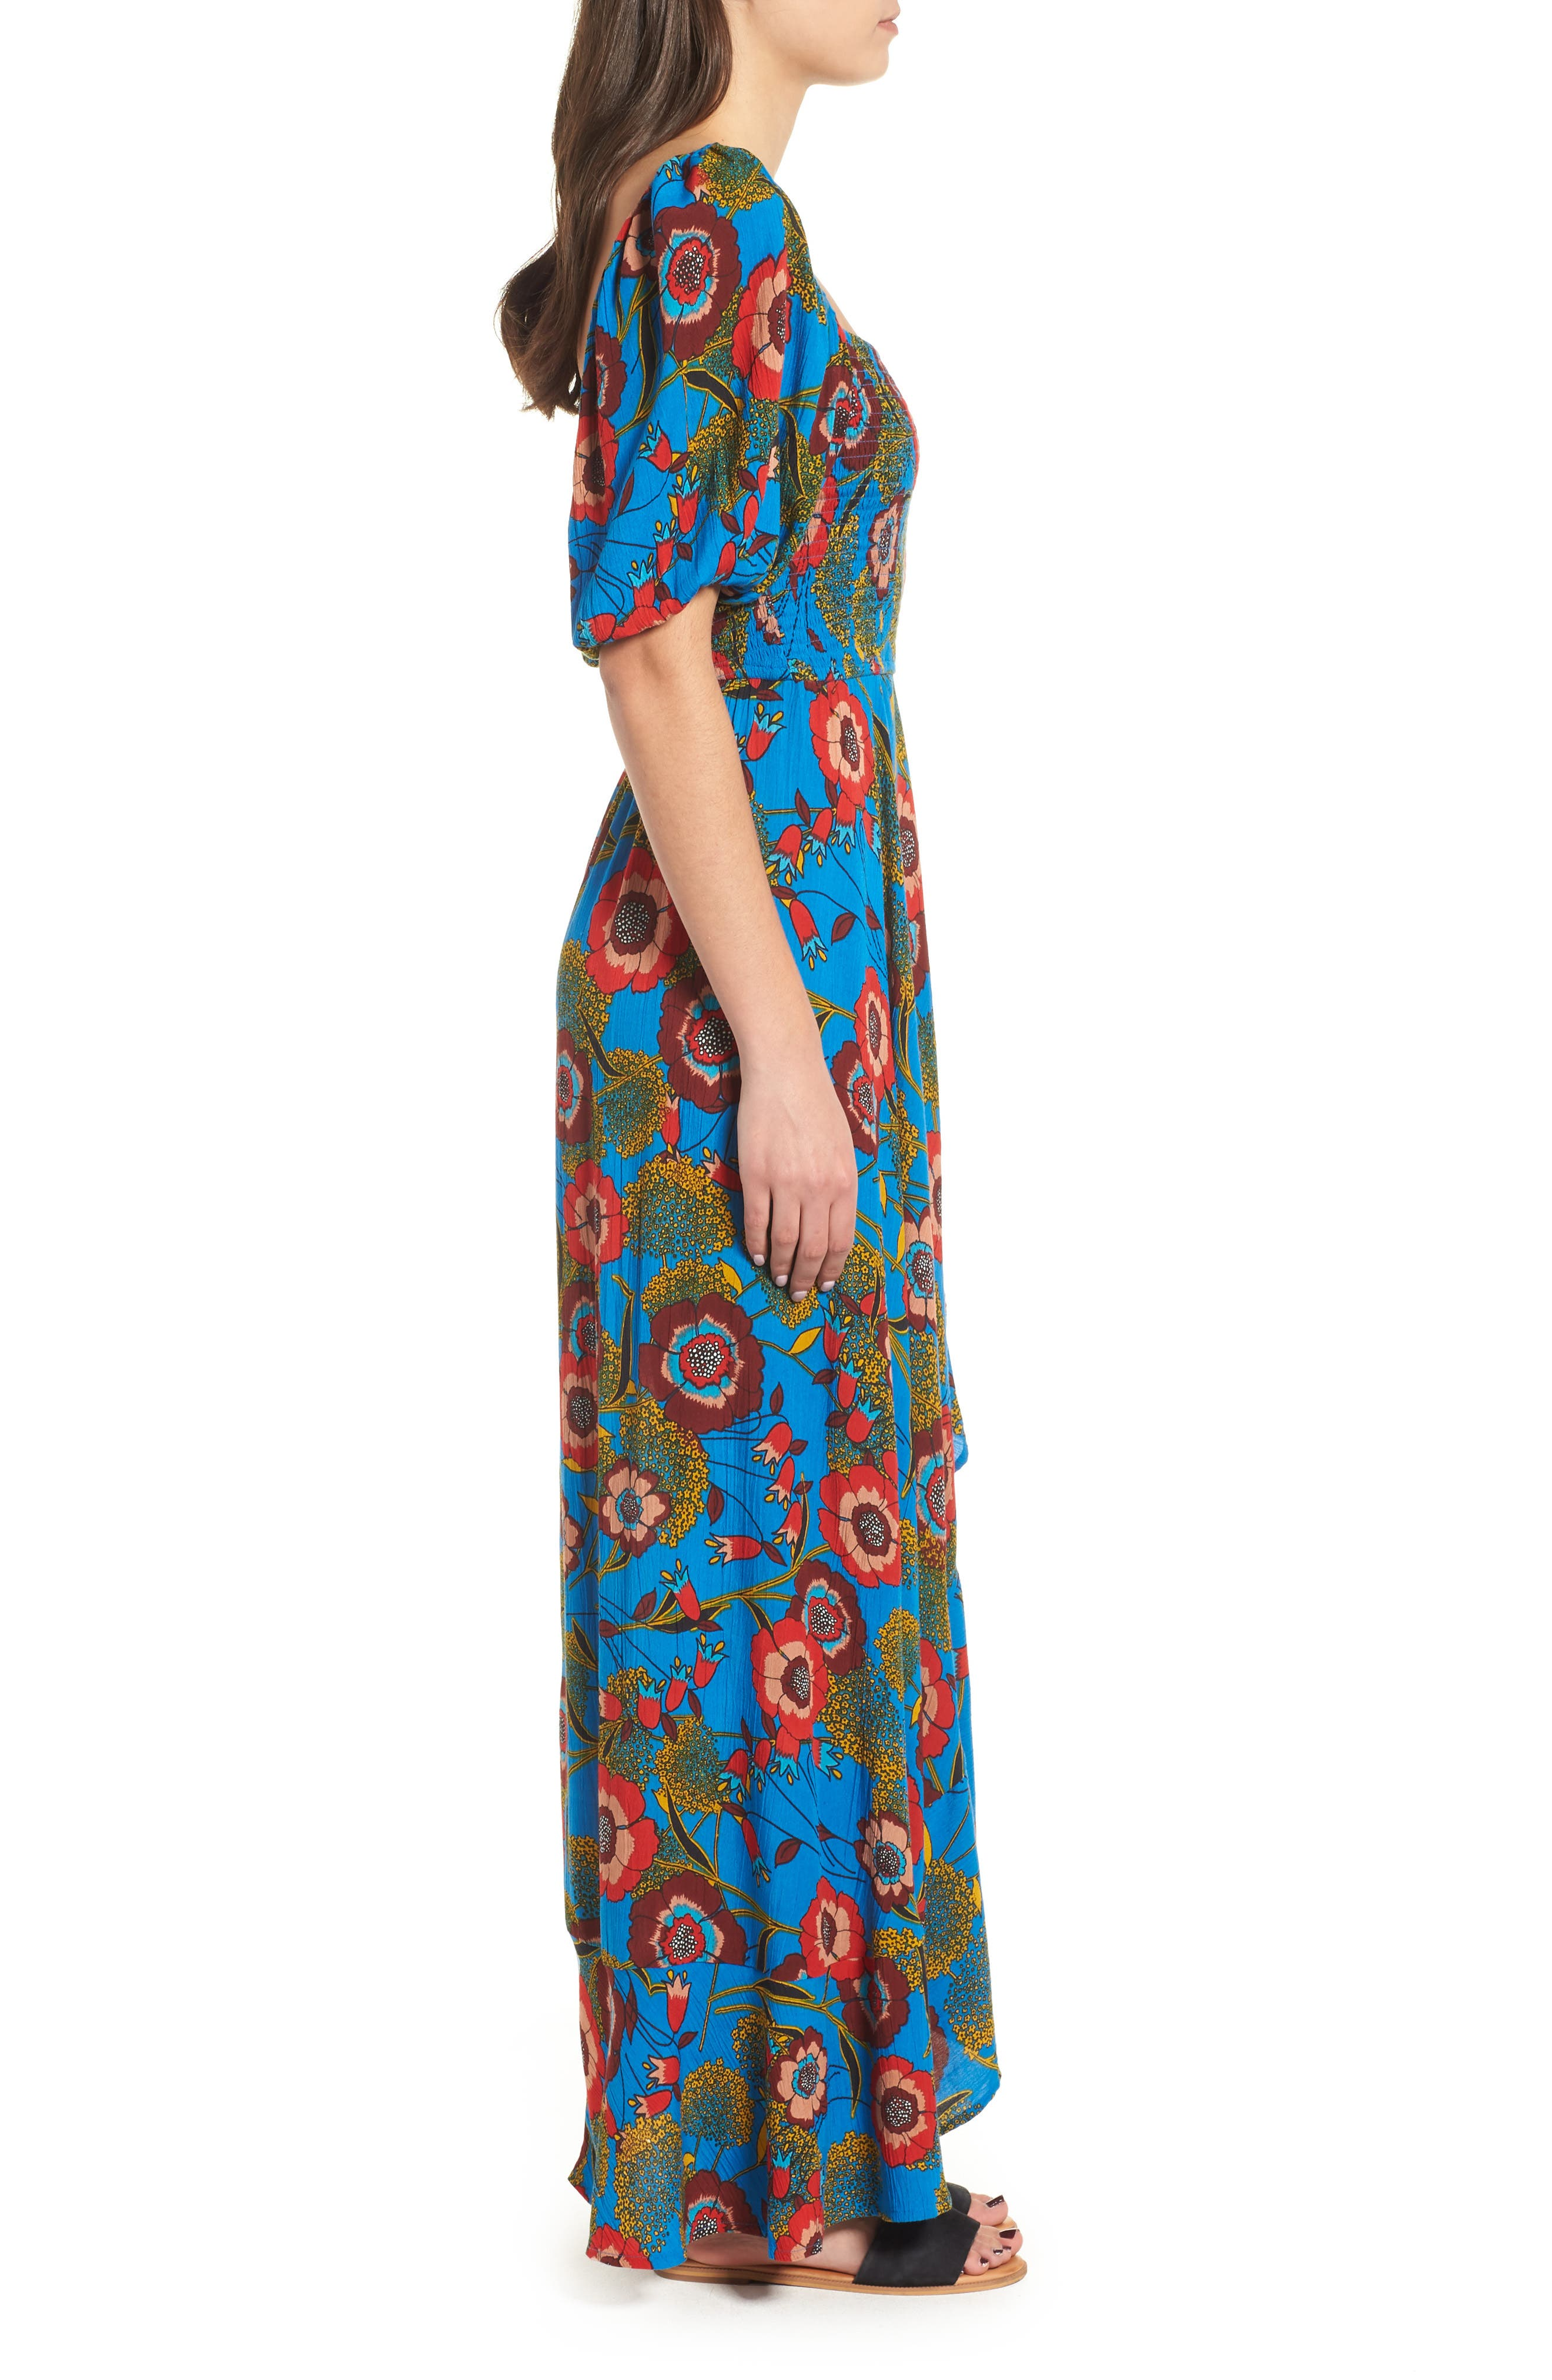 Heirloom Blossom Maxi Dress,                             Alternate thumbnail 3, color,                             ROYAL/ BLUE/ RED